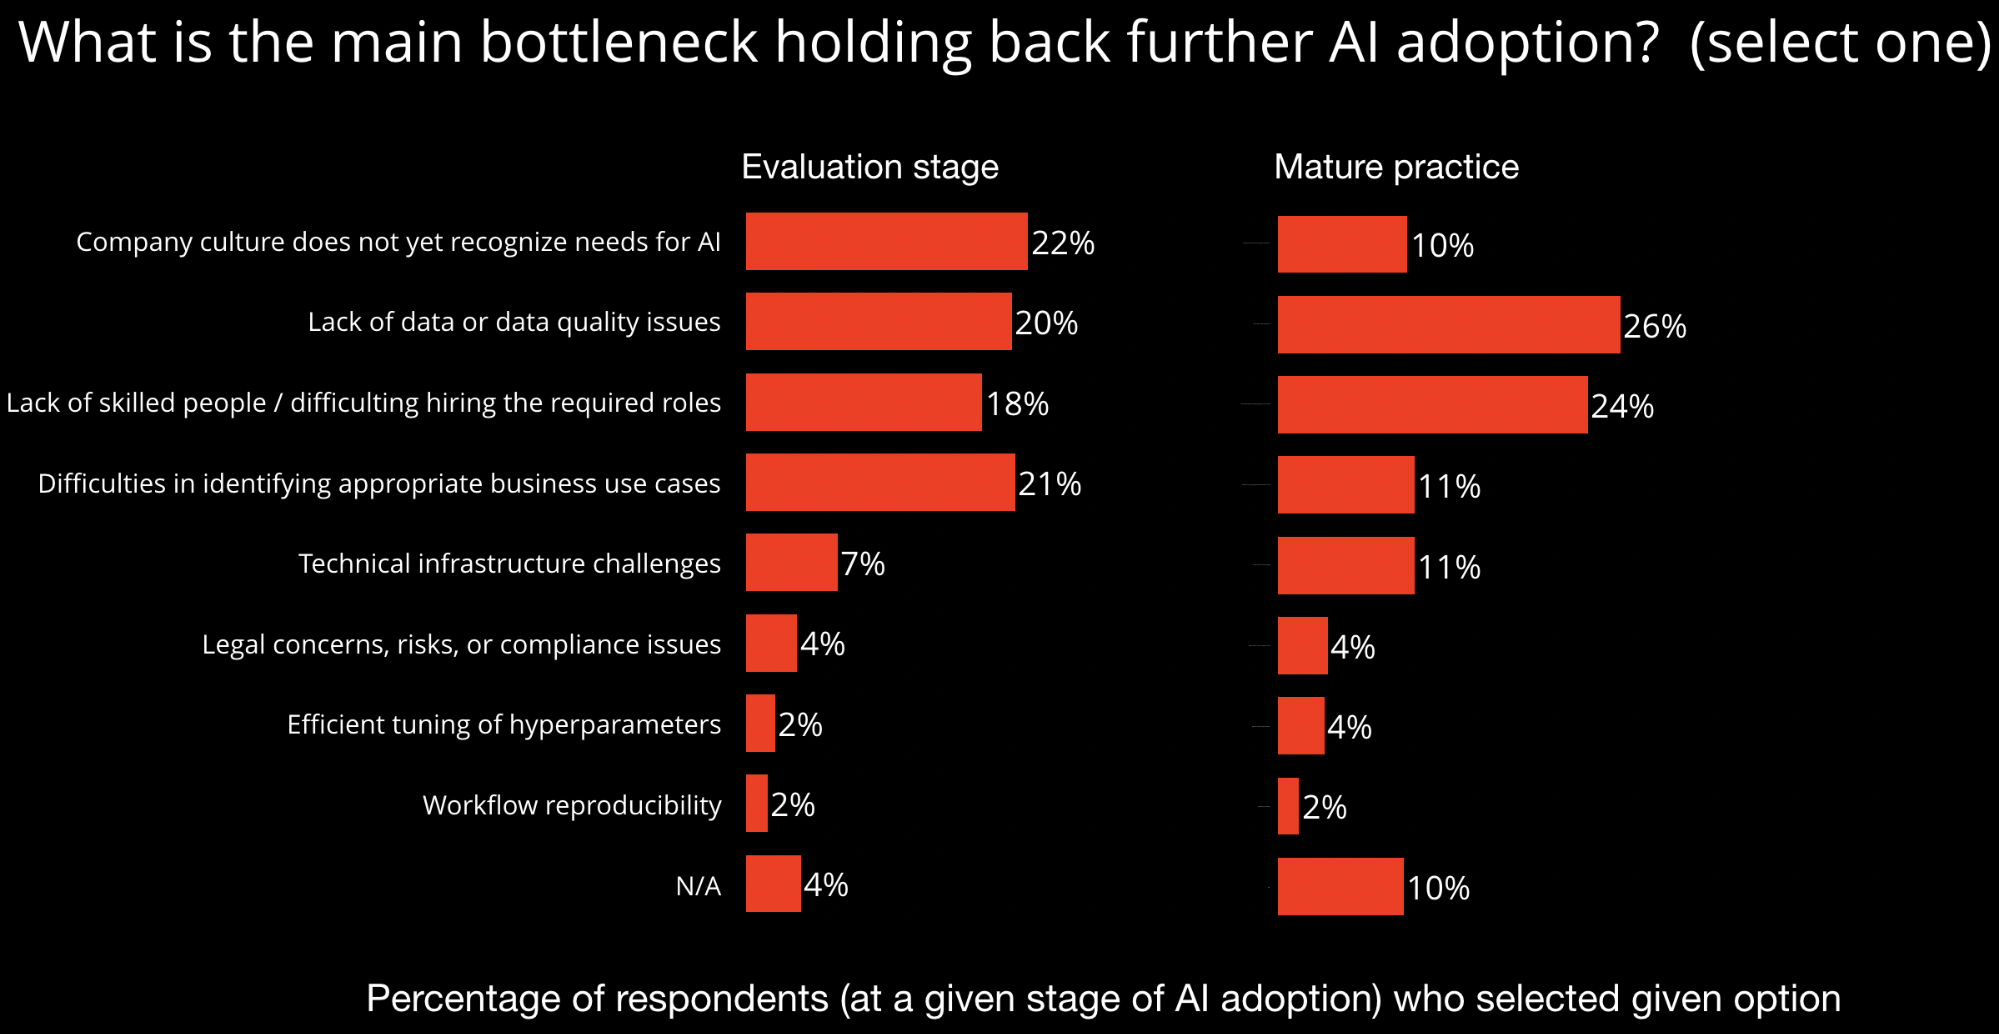 Data bottleneck holding back further adoption of AI technologies